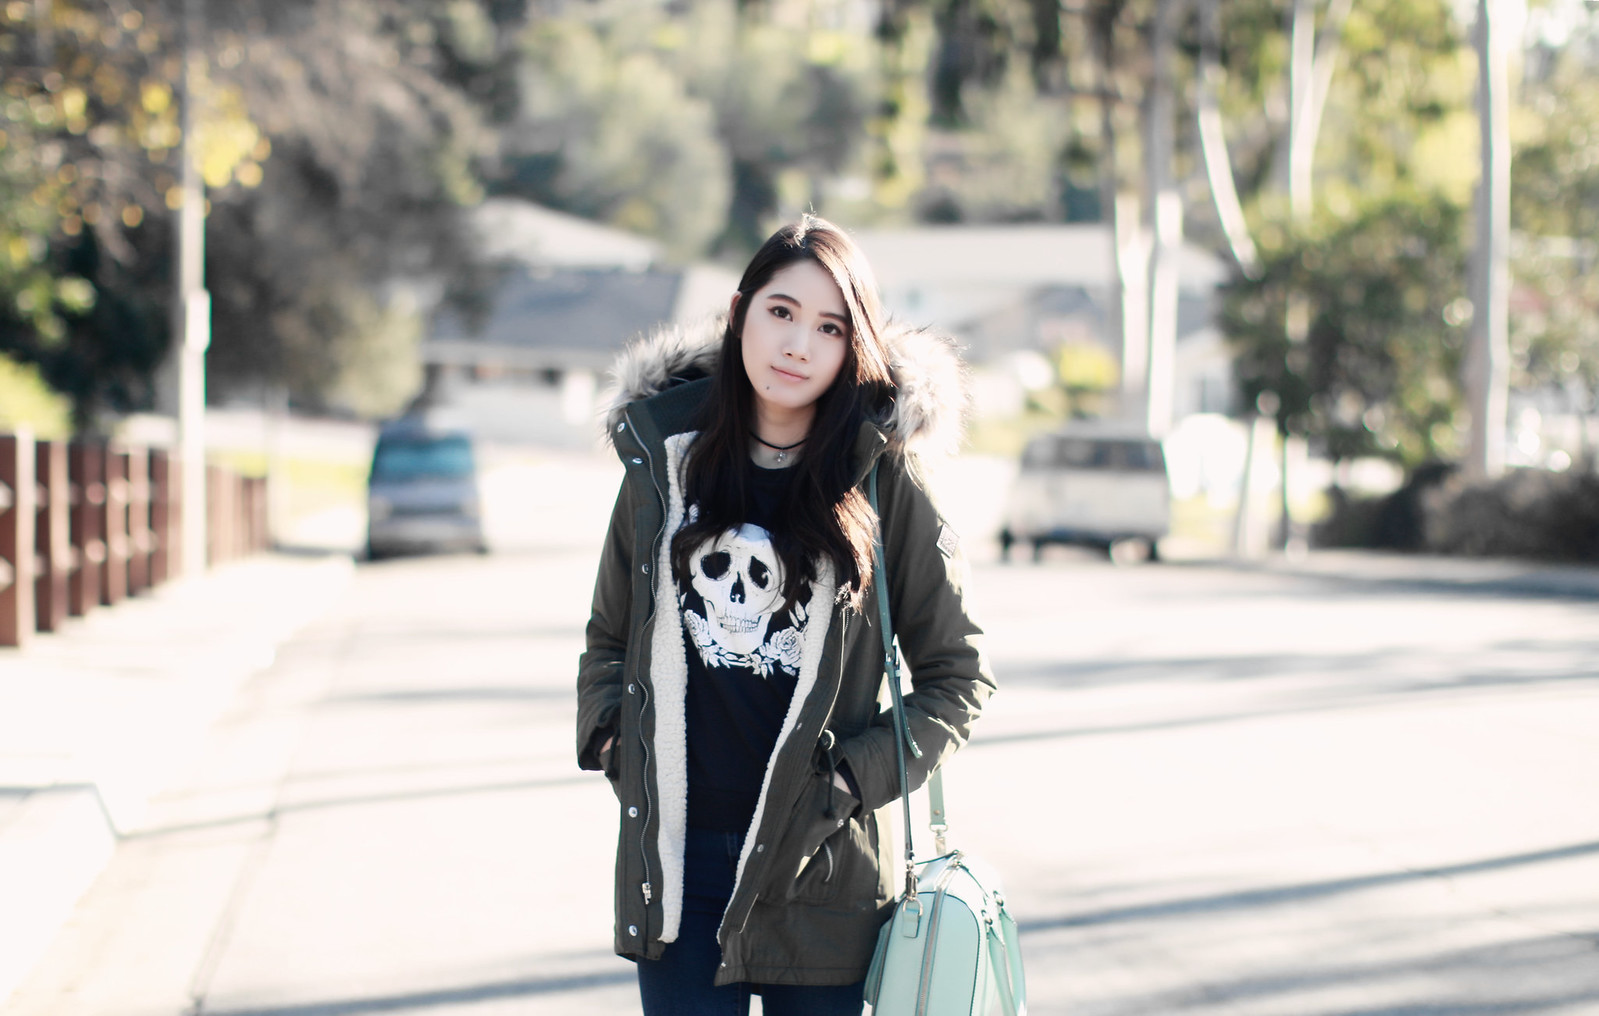 1771-ootd-fashion-olive-utility-parka-jacket-hollister-skulls-sweatshirt-los-angeles- adidas-forever21-winterfashion-outfitoftheday-clothestoyouuu-elizabeeetht